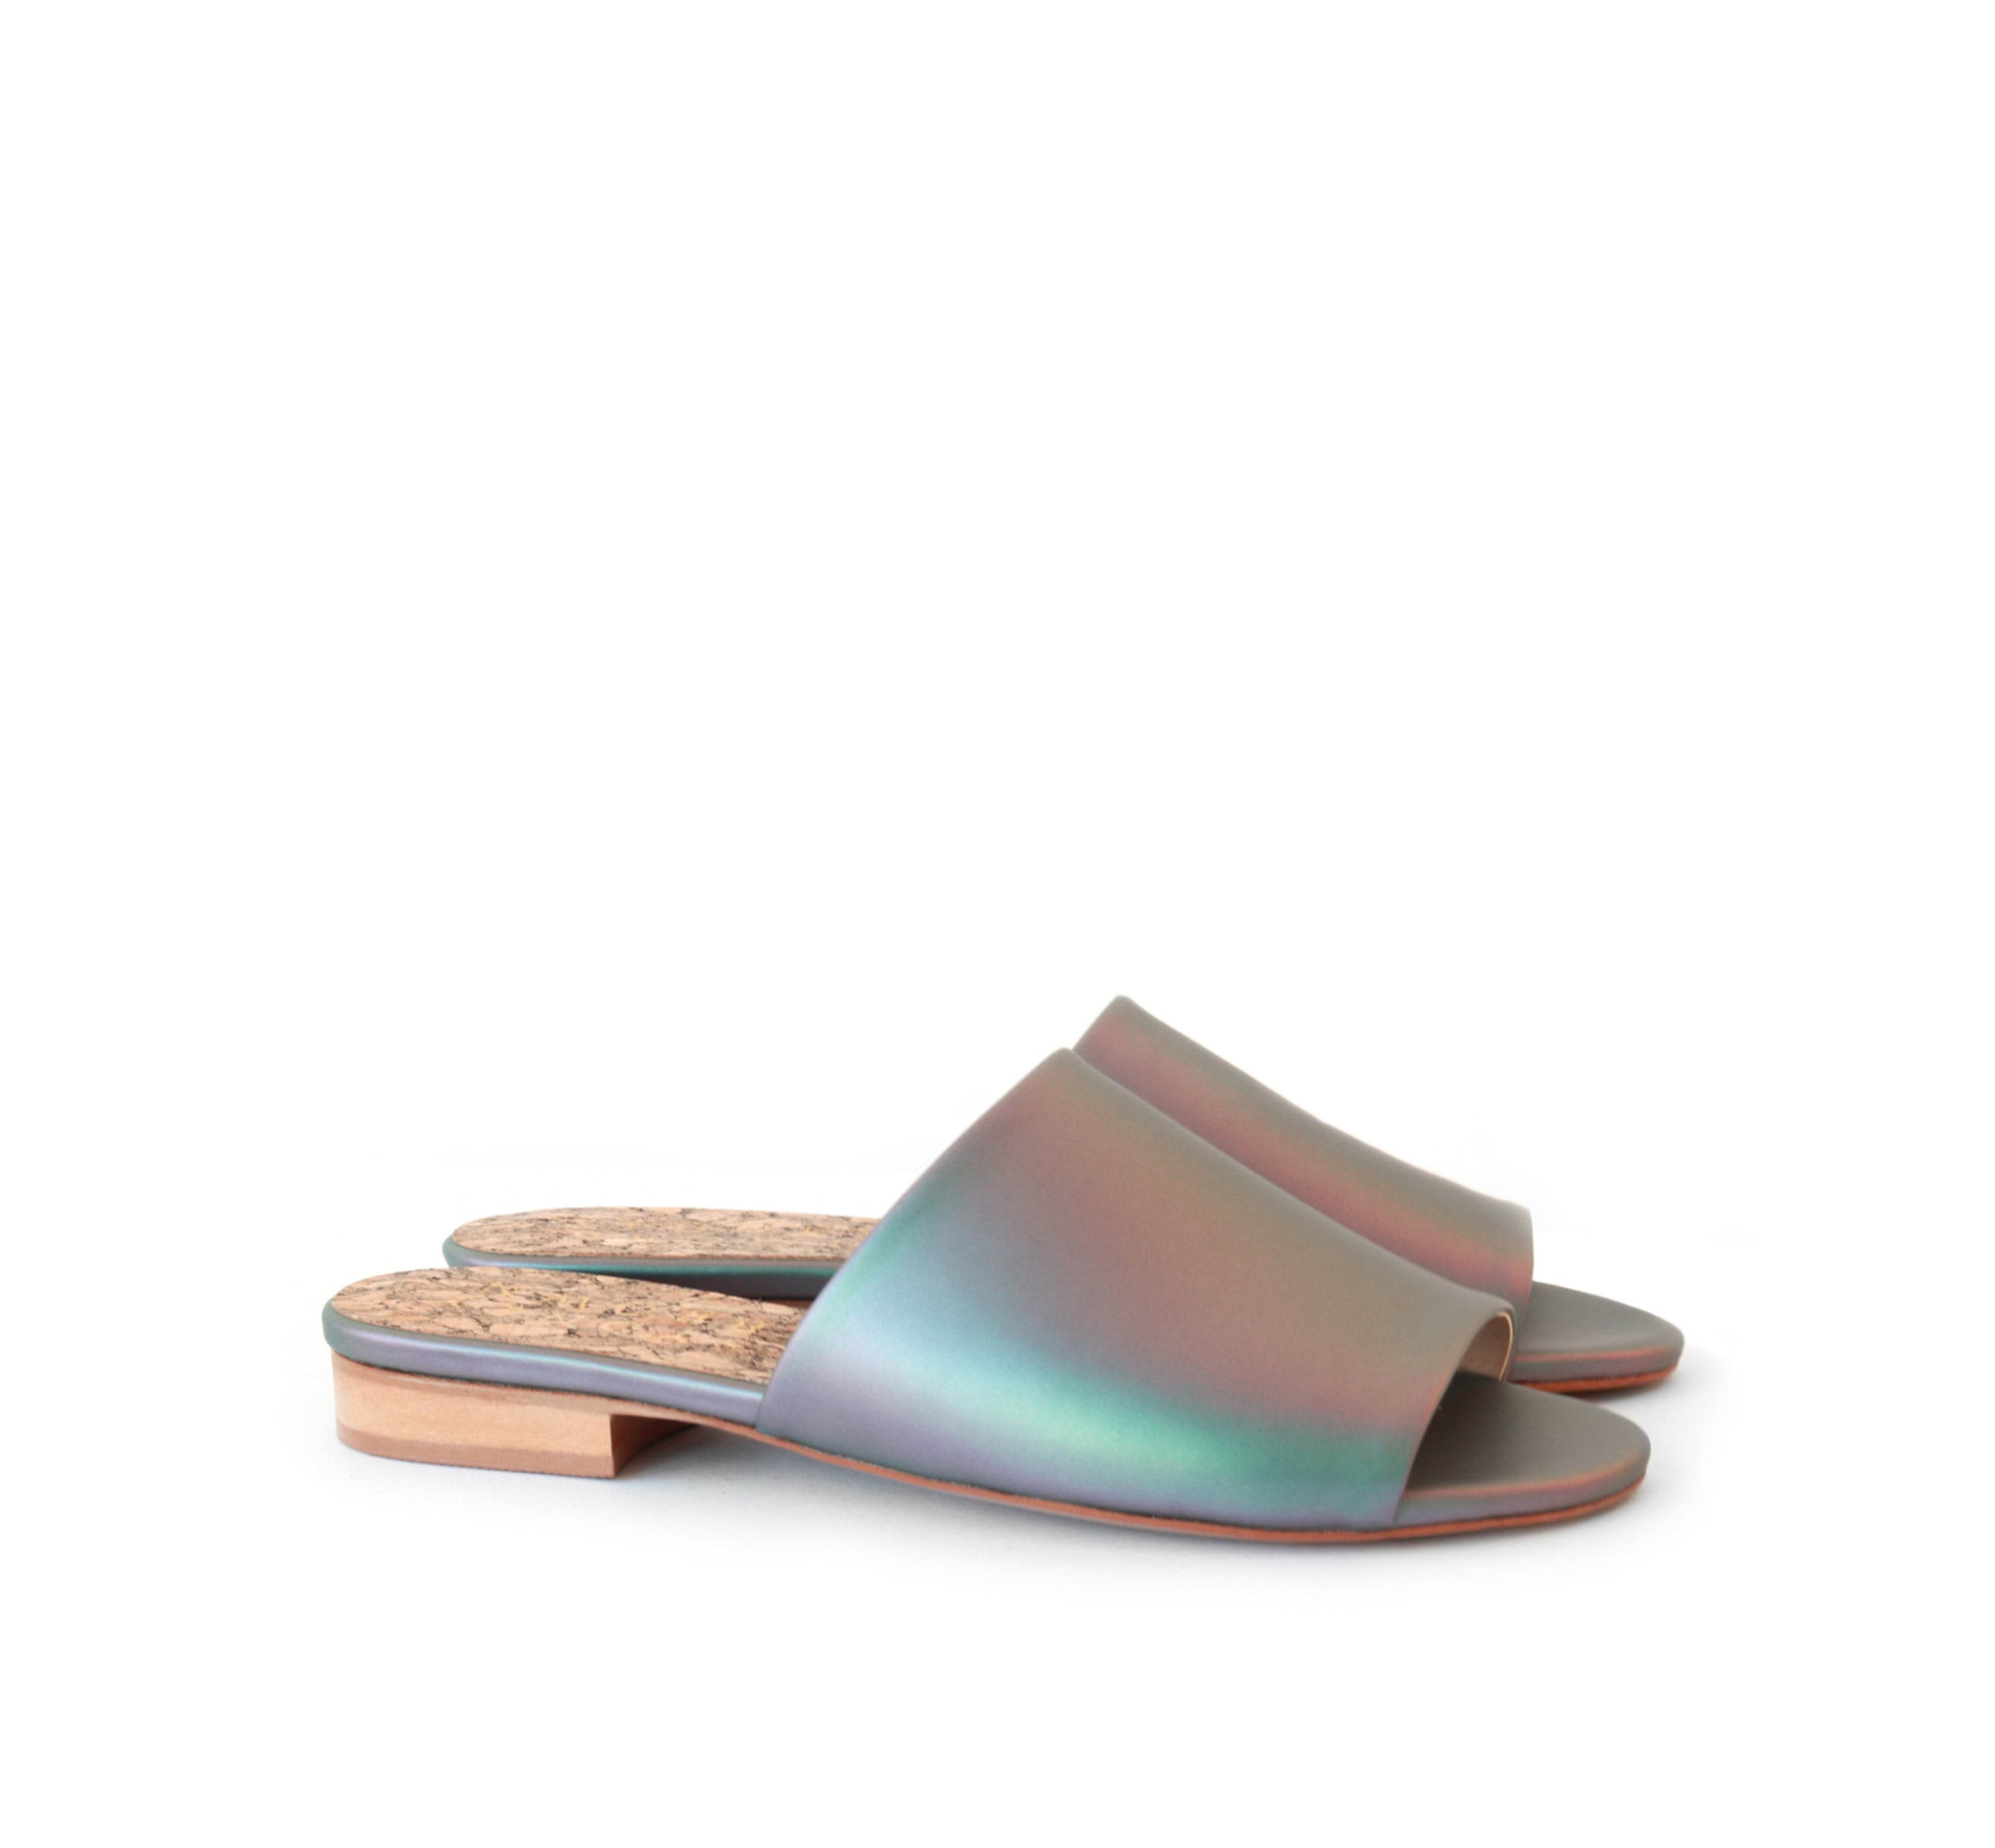 Sydney Brown Vegan, Animal-Free, Non-Leather, Ethical Matte Iridescent Magical Flat Slide Sandals